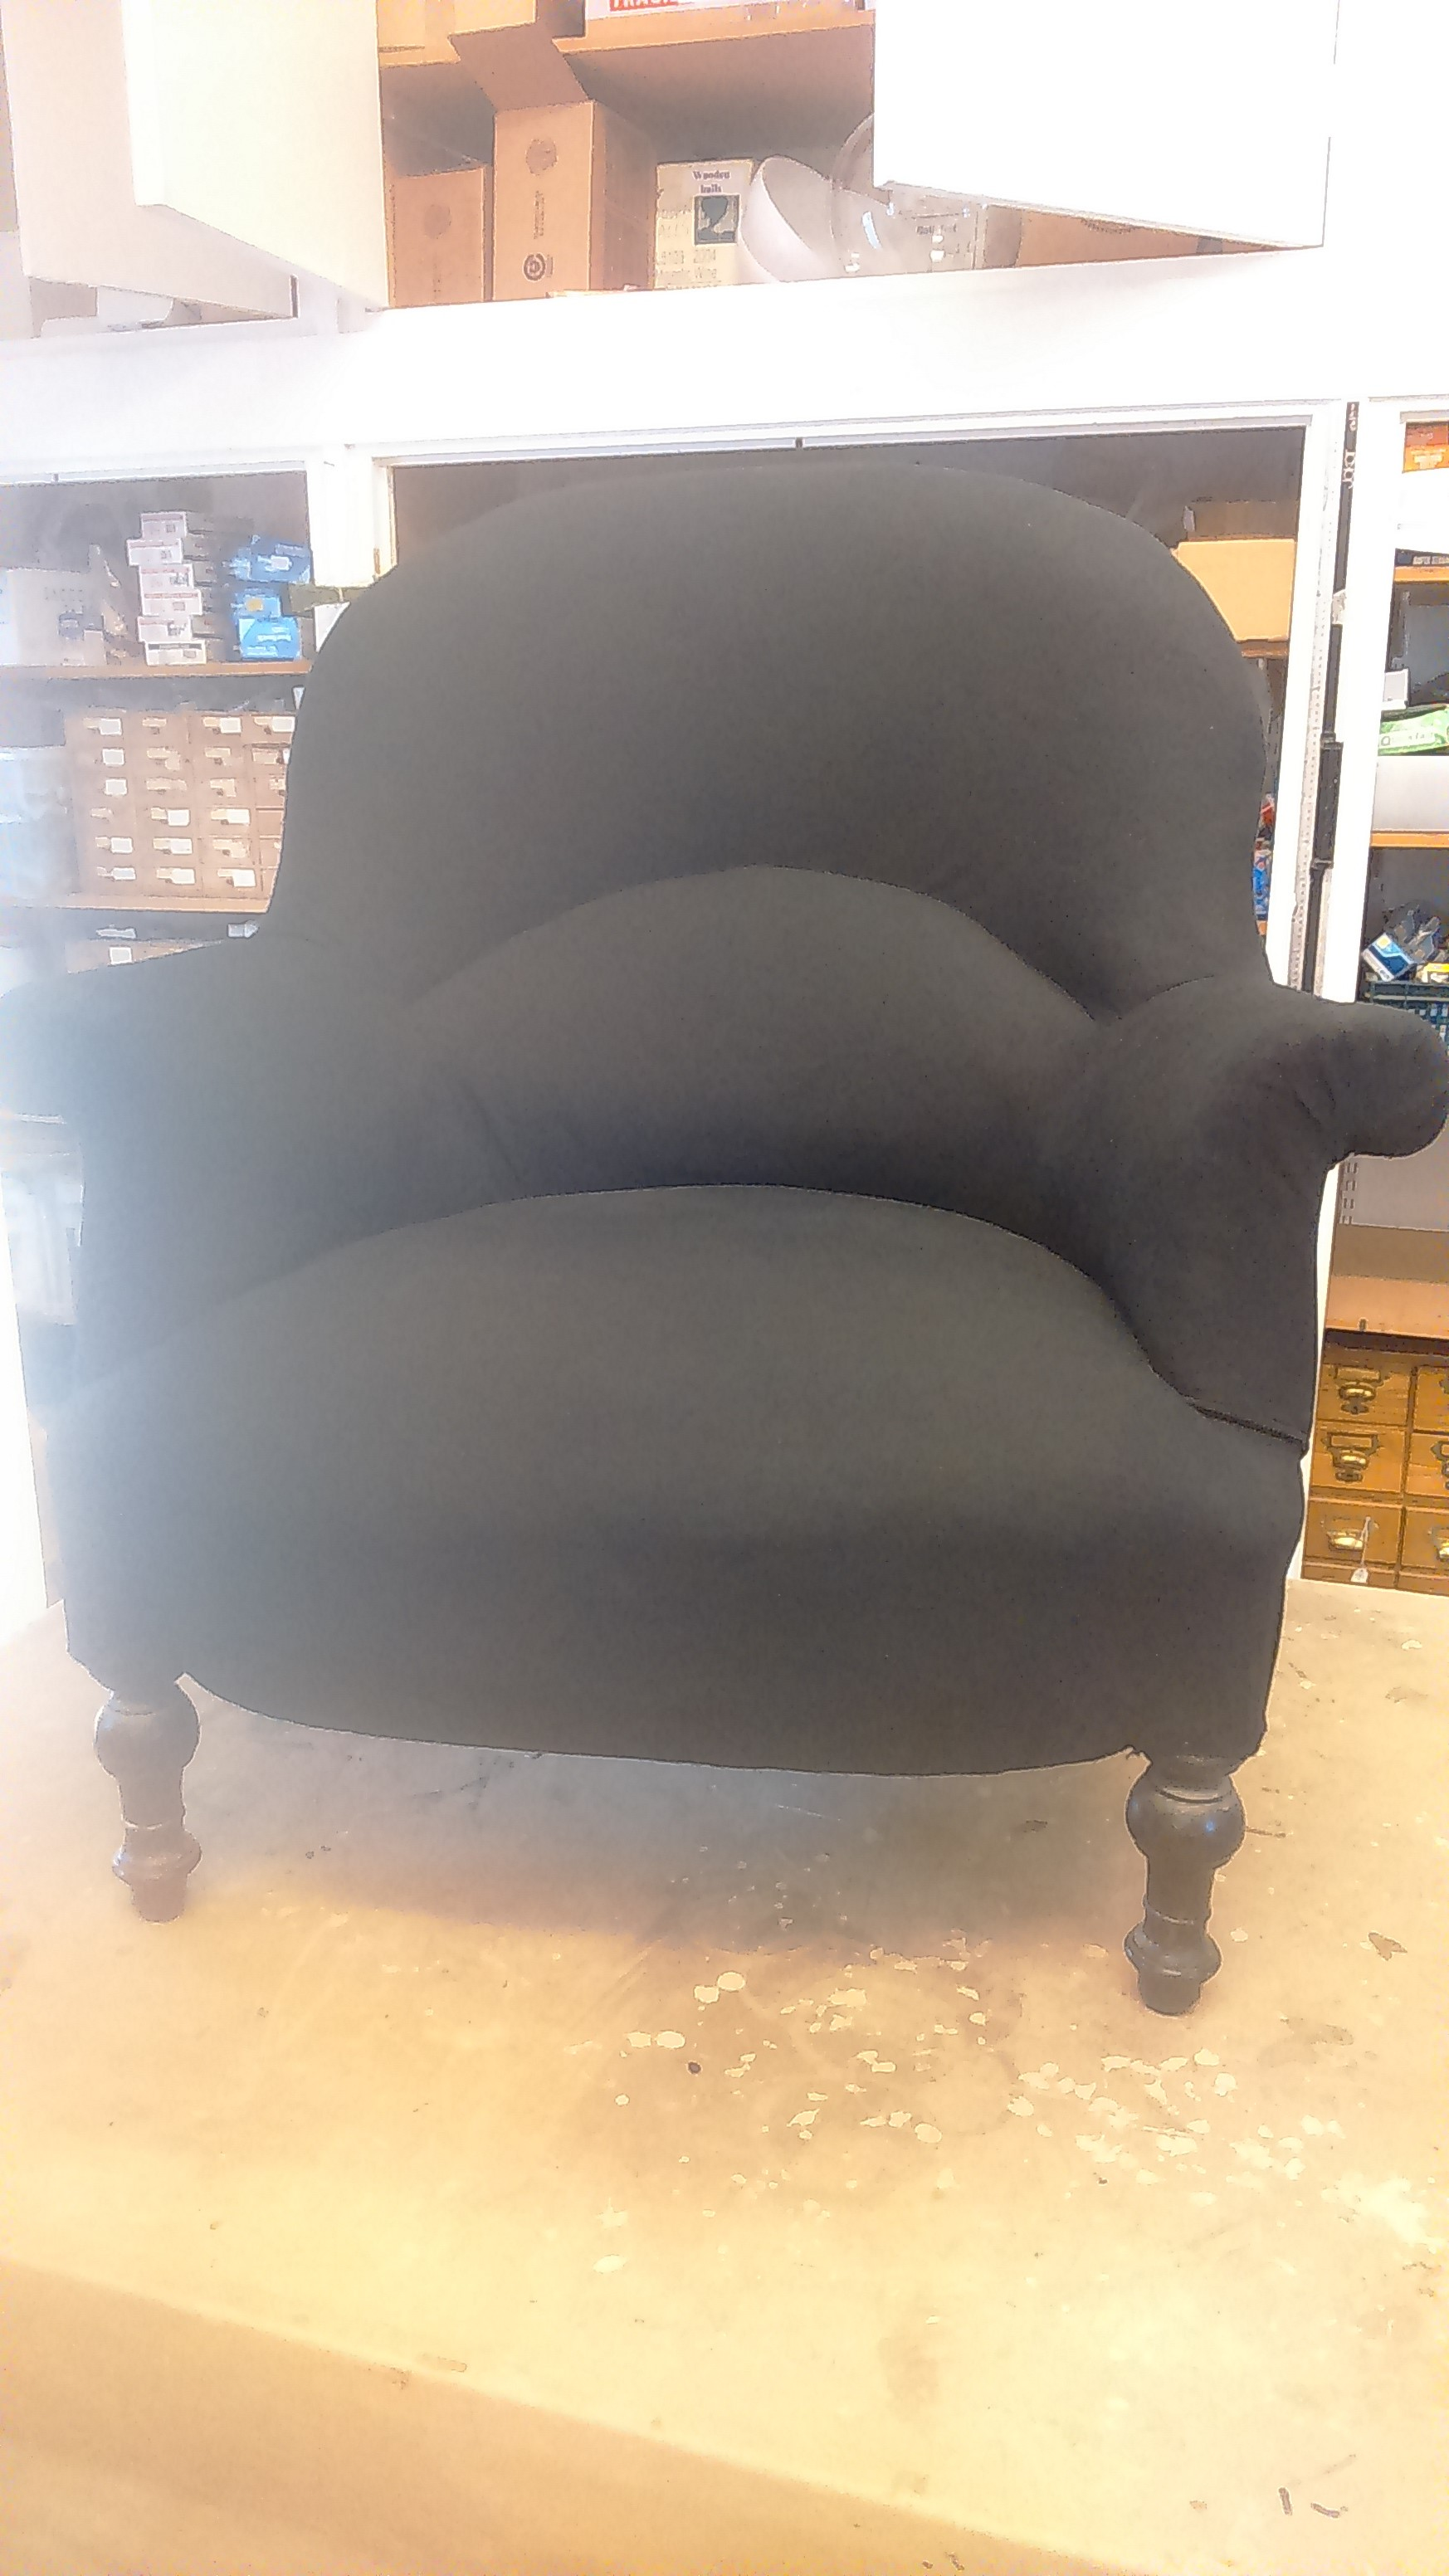 Armchair Reupholstry - Crapaud Chair